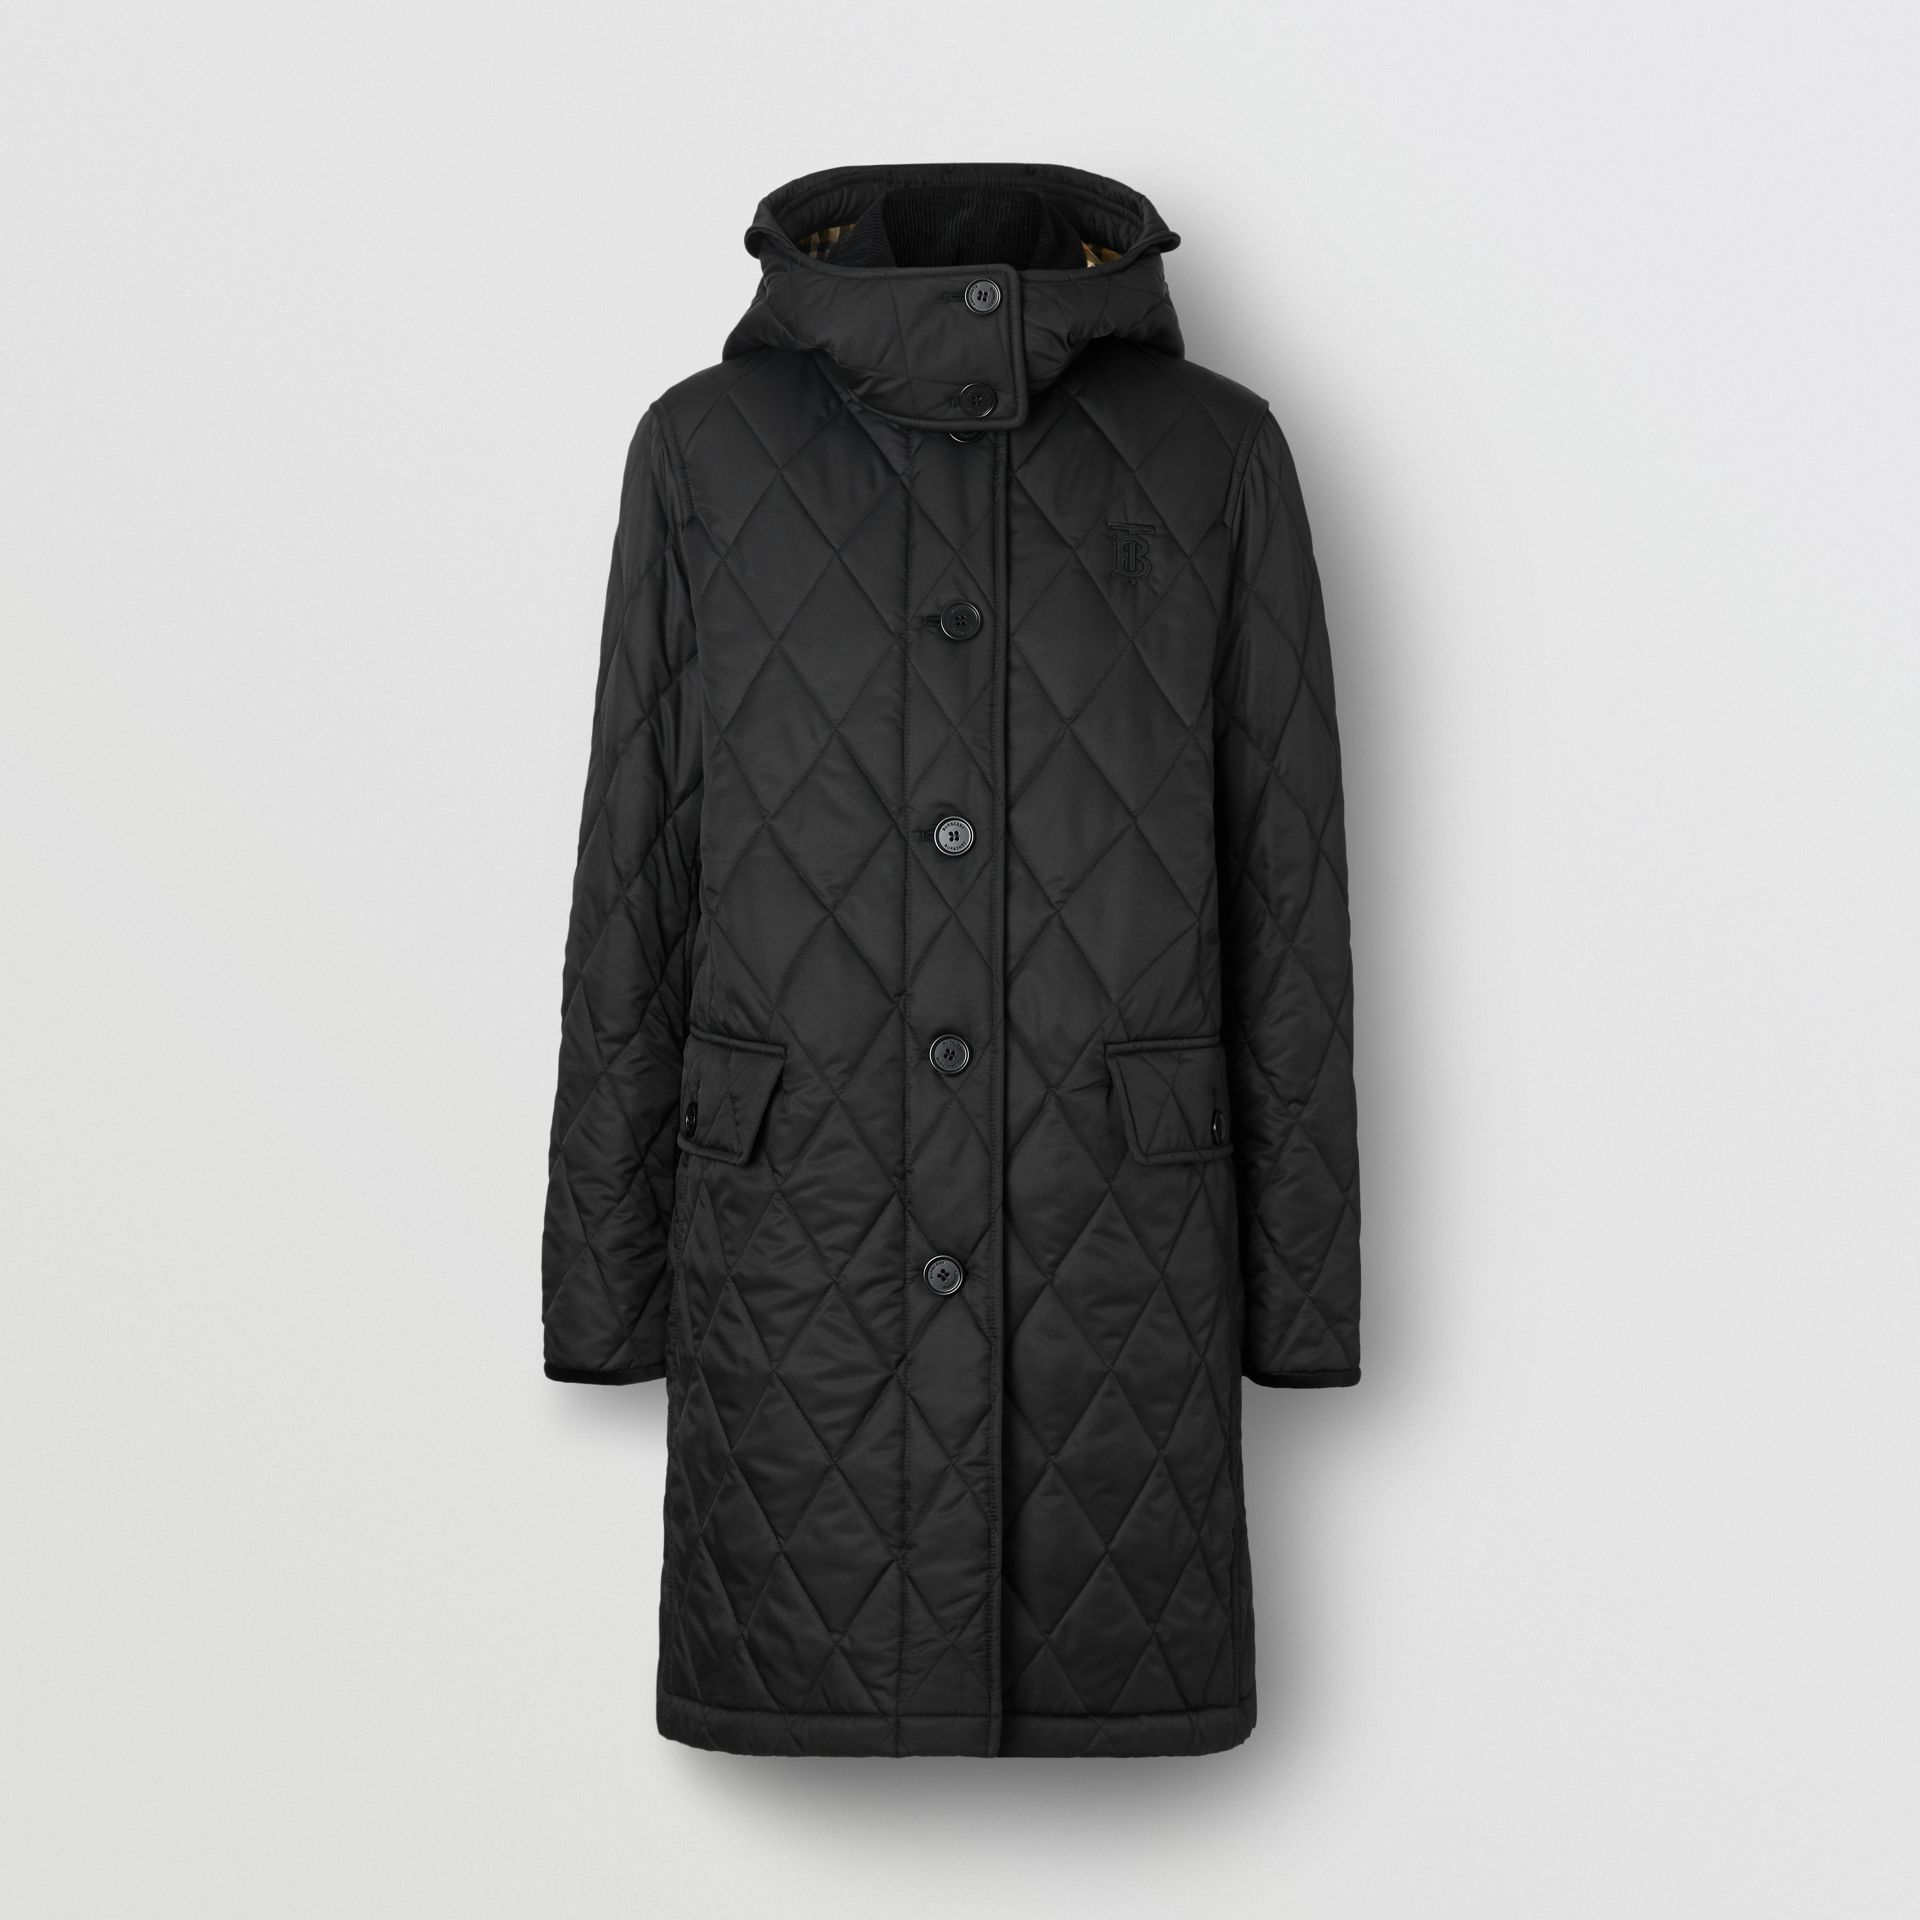 Detachable Hood Monogram Motif Quilted Coat in Black - Women | Burberry Hong Kong - gallery image 3